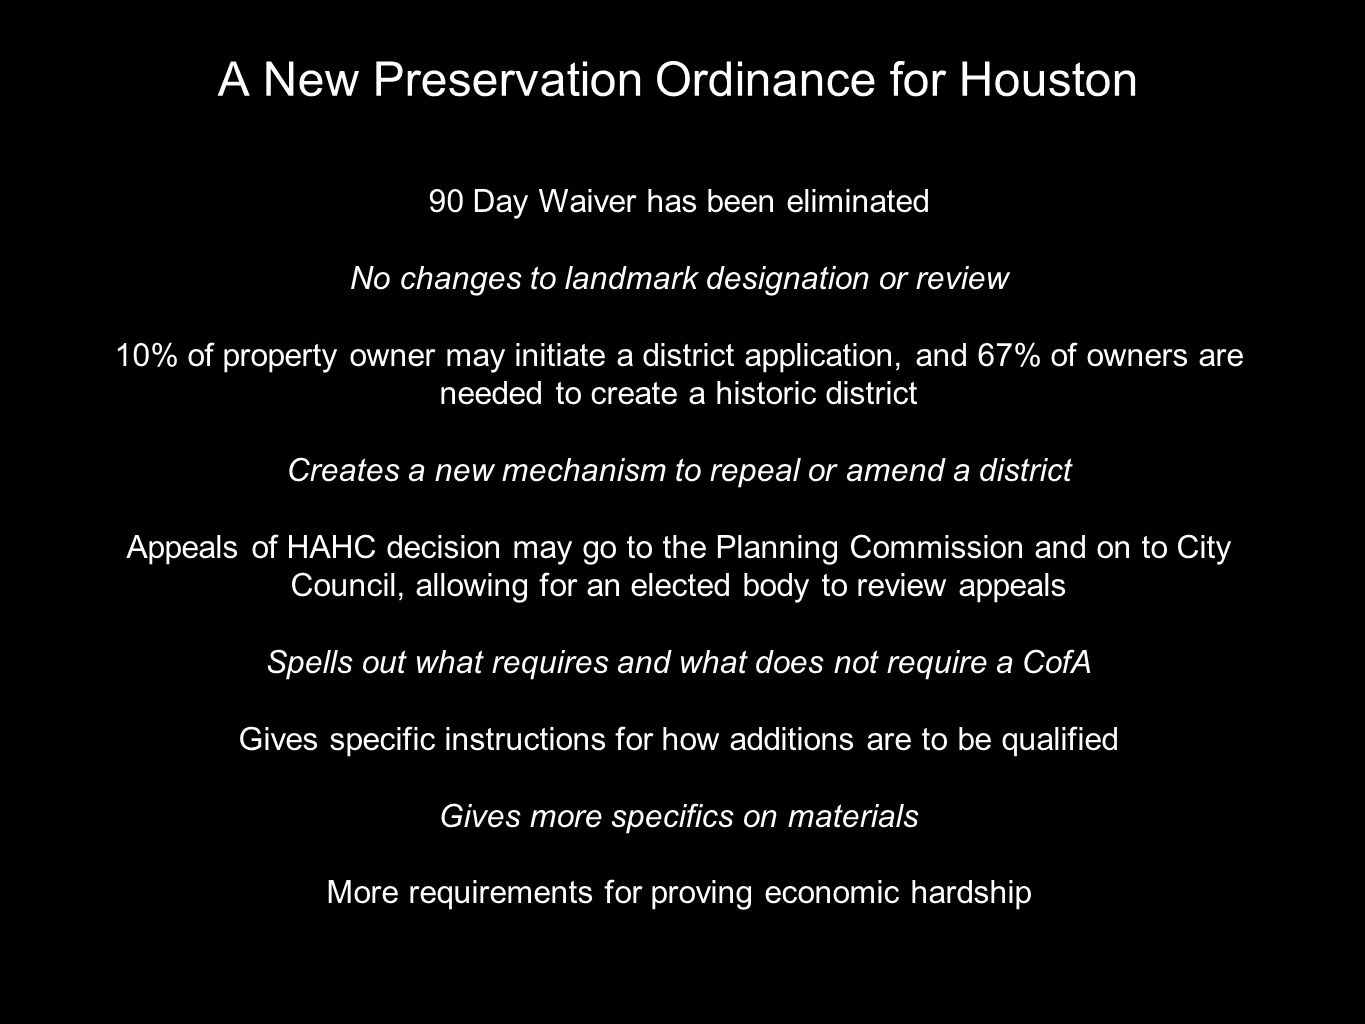 A New Preservation Ordinance for Houston 90 Day Waiver has been eliminated No changes to landmark designation or review 10% of property owner may initiate a district application, and 67% of owners are needed to create a historic district Creates a new mechanism to repeal or amend a district Appeals of HAHC decision may go to the Planning Commission and on to City Council, allowing for an elected body to review appeals Spells out what requires and what does not require a CofA Gives specific instructions for how additions are to be qualified Gives more specifics on materials More requirements for proving economic hardship